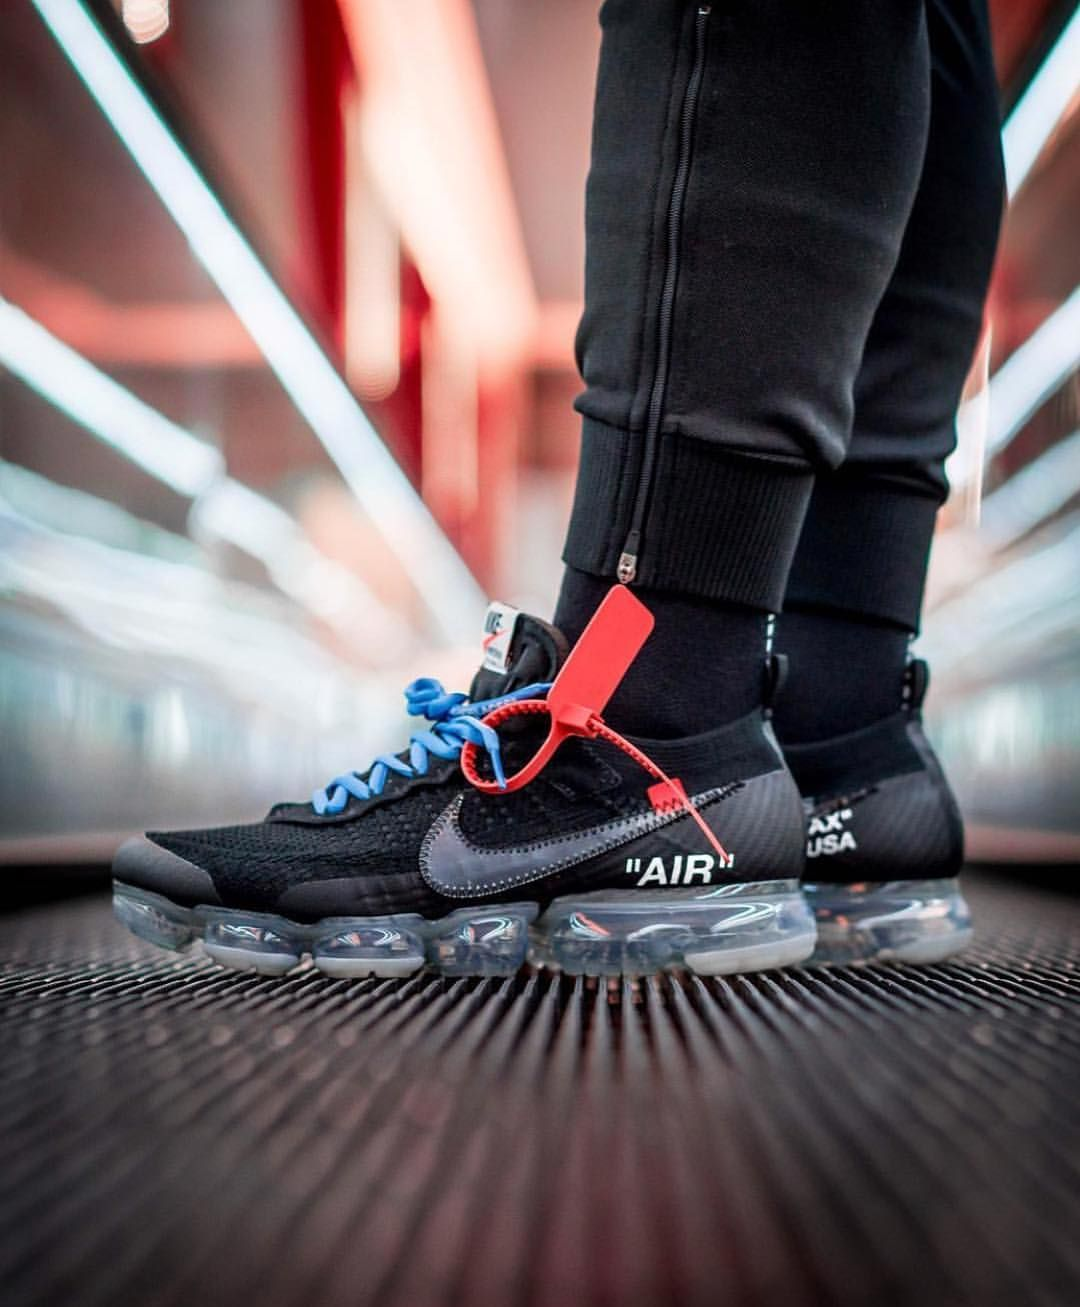 a6dcacbce4 OFF WHITE x Nike Air Vapormax Flyknit | Kicks in 2019 | Fake shoes ...